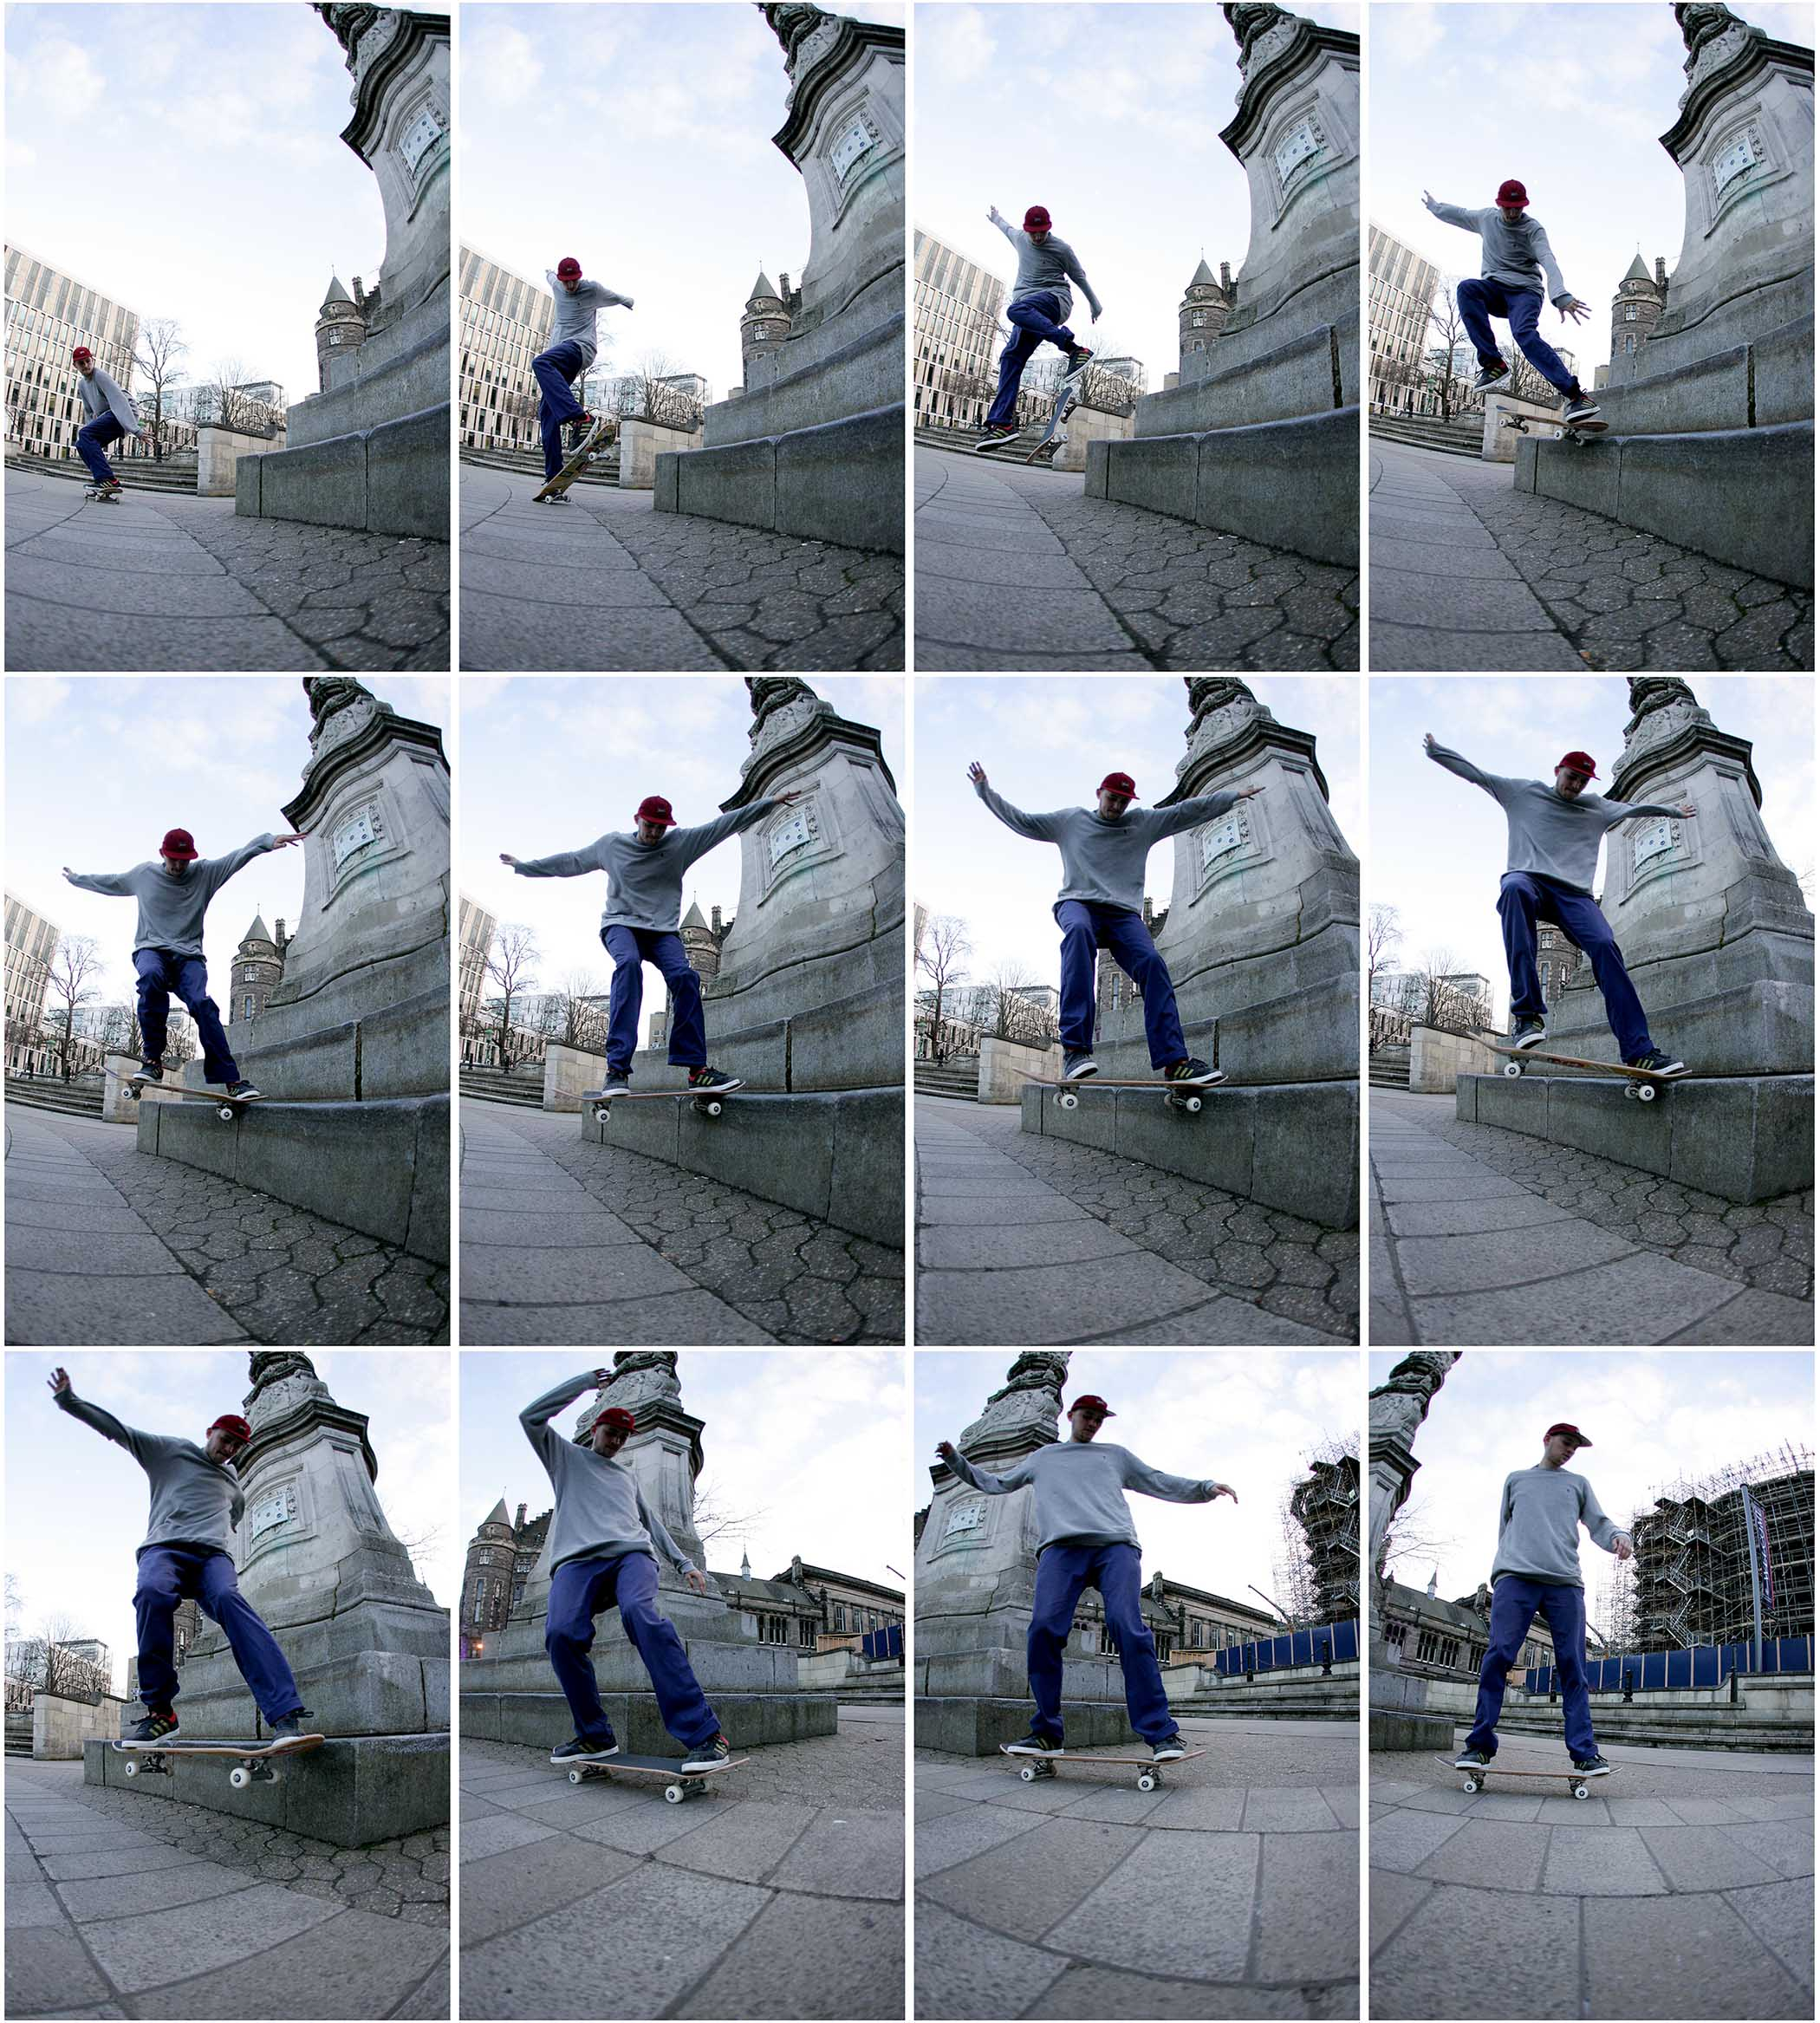 nick stansfield big spin nose slide in Scotland for black sheep skateboard shop